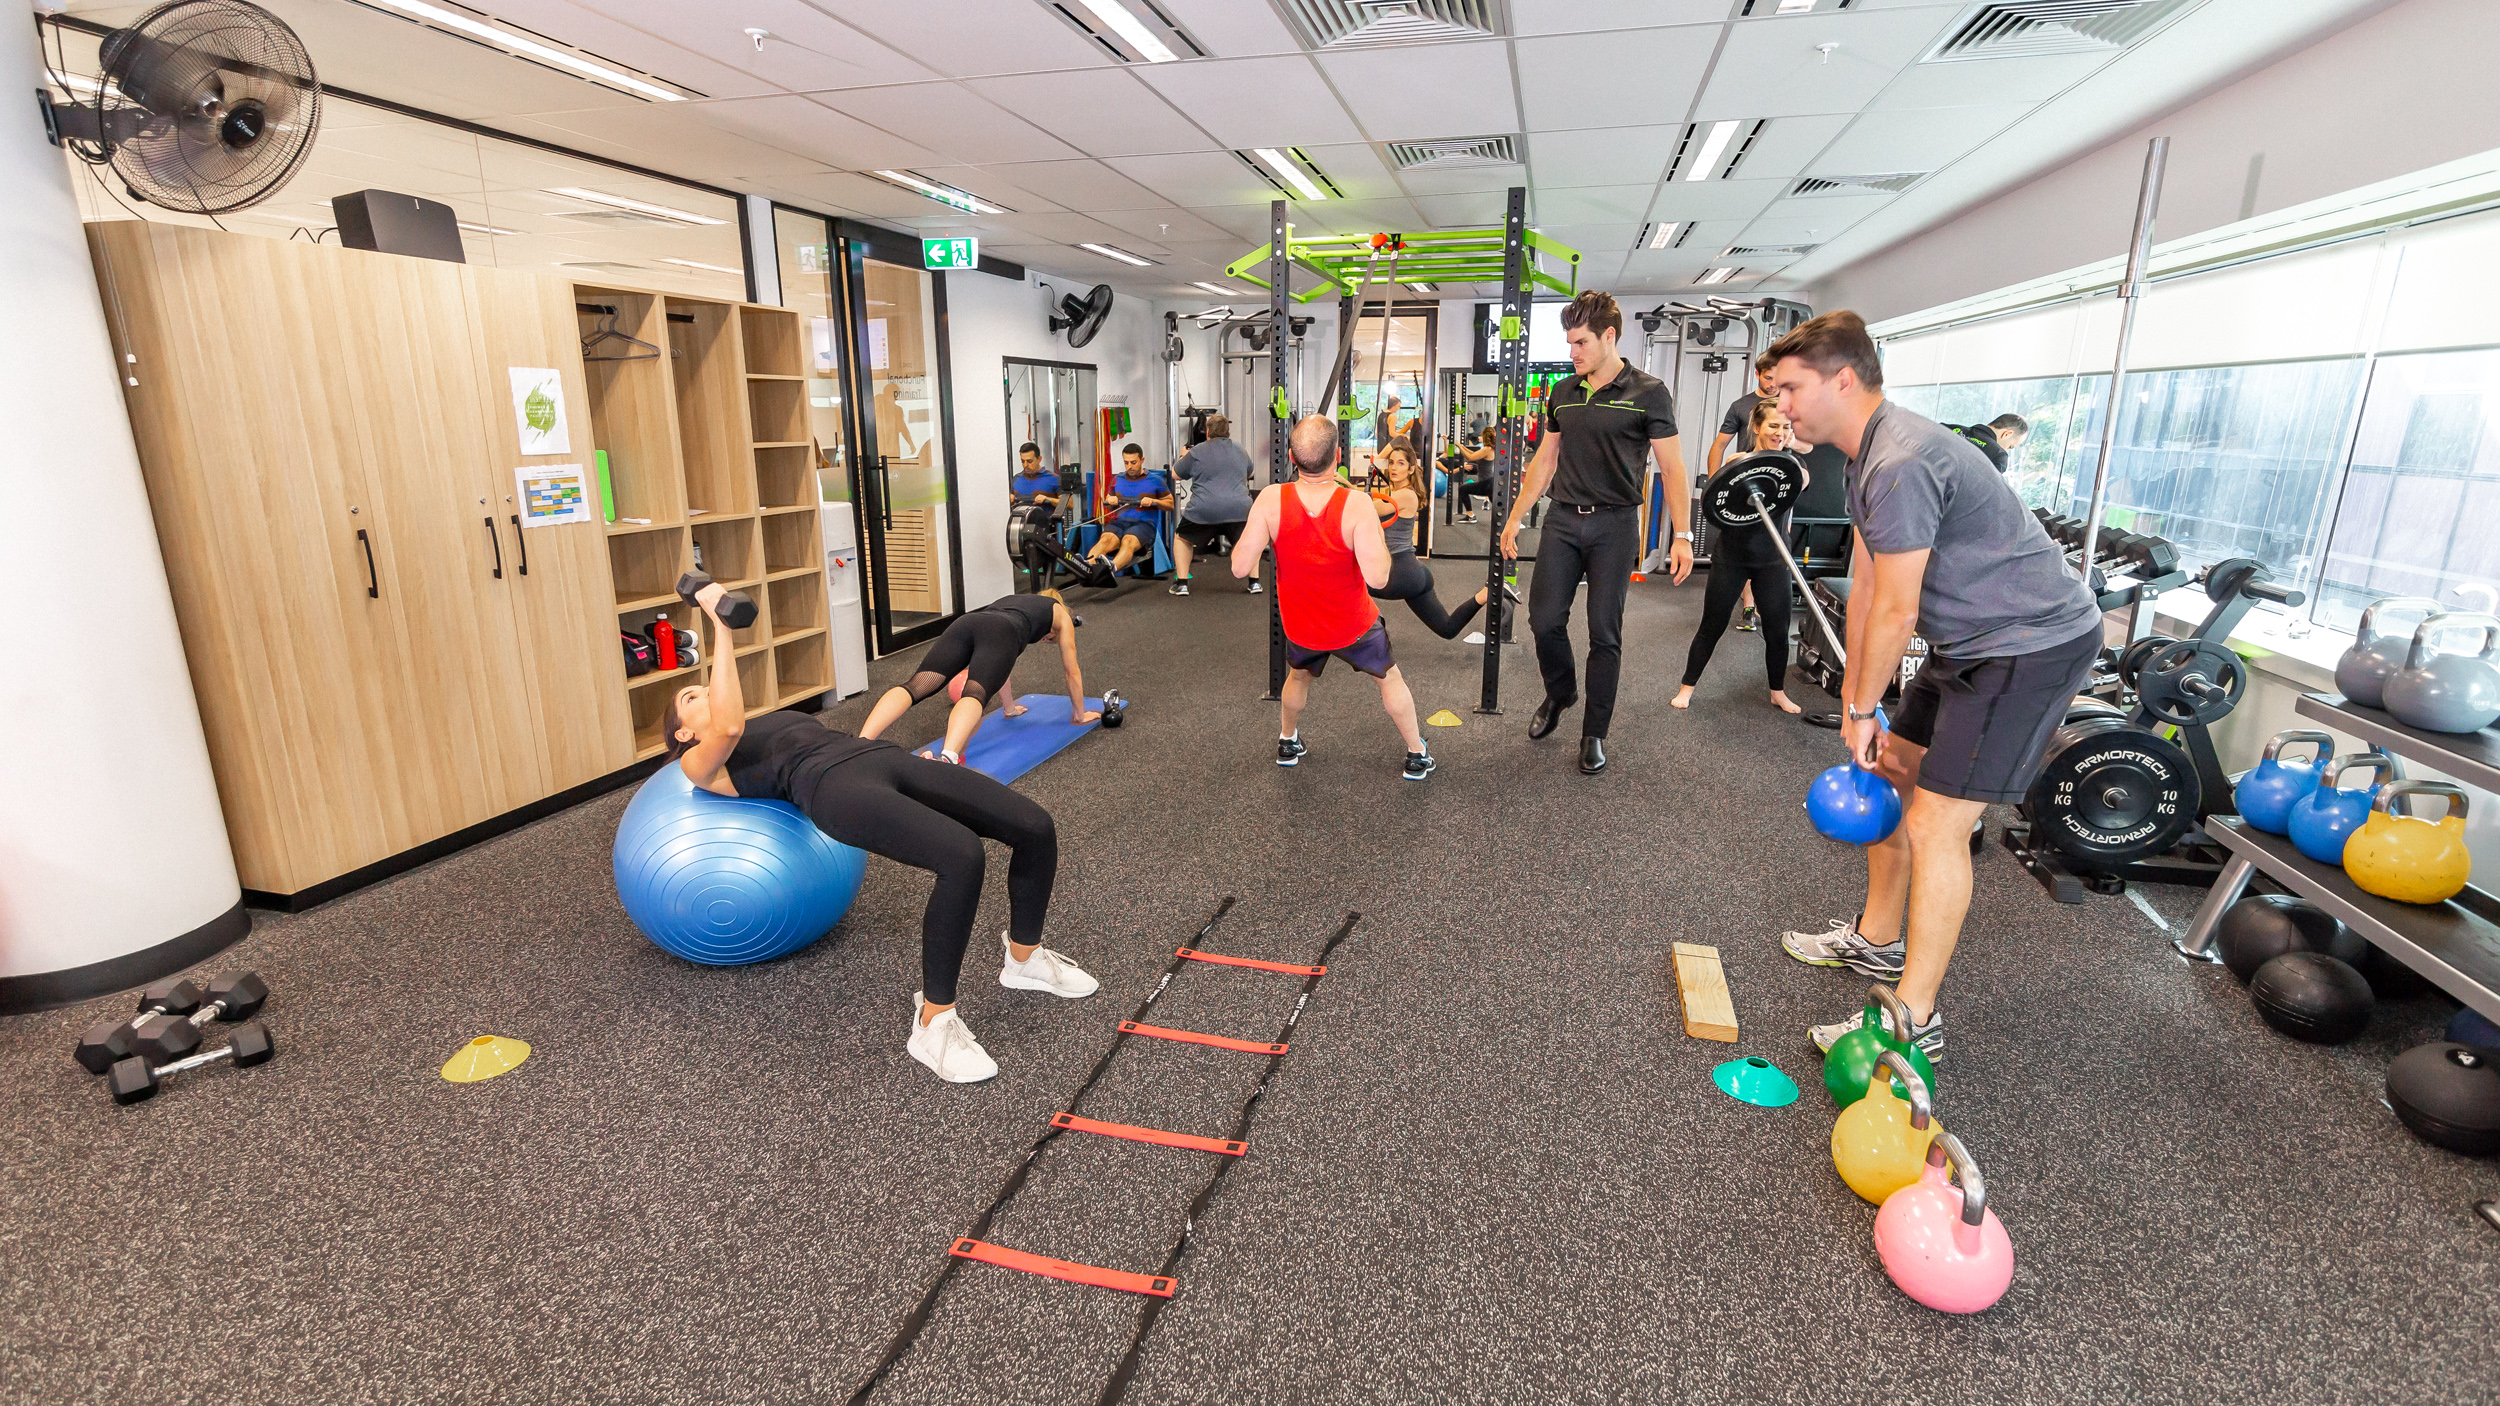 Group Exercise Classes Perth CBD - FREE TRIAL SESSIONS